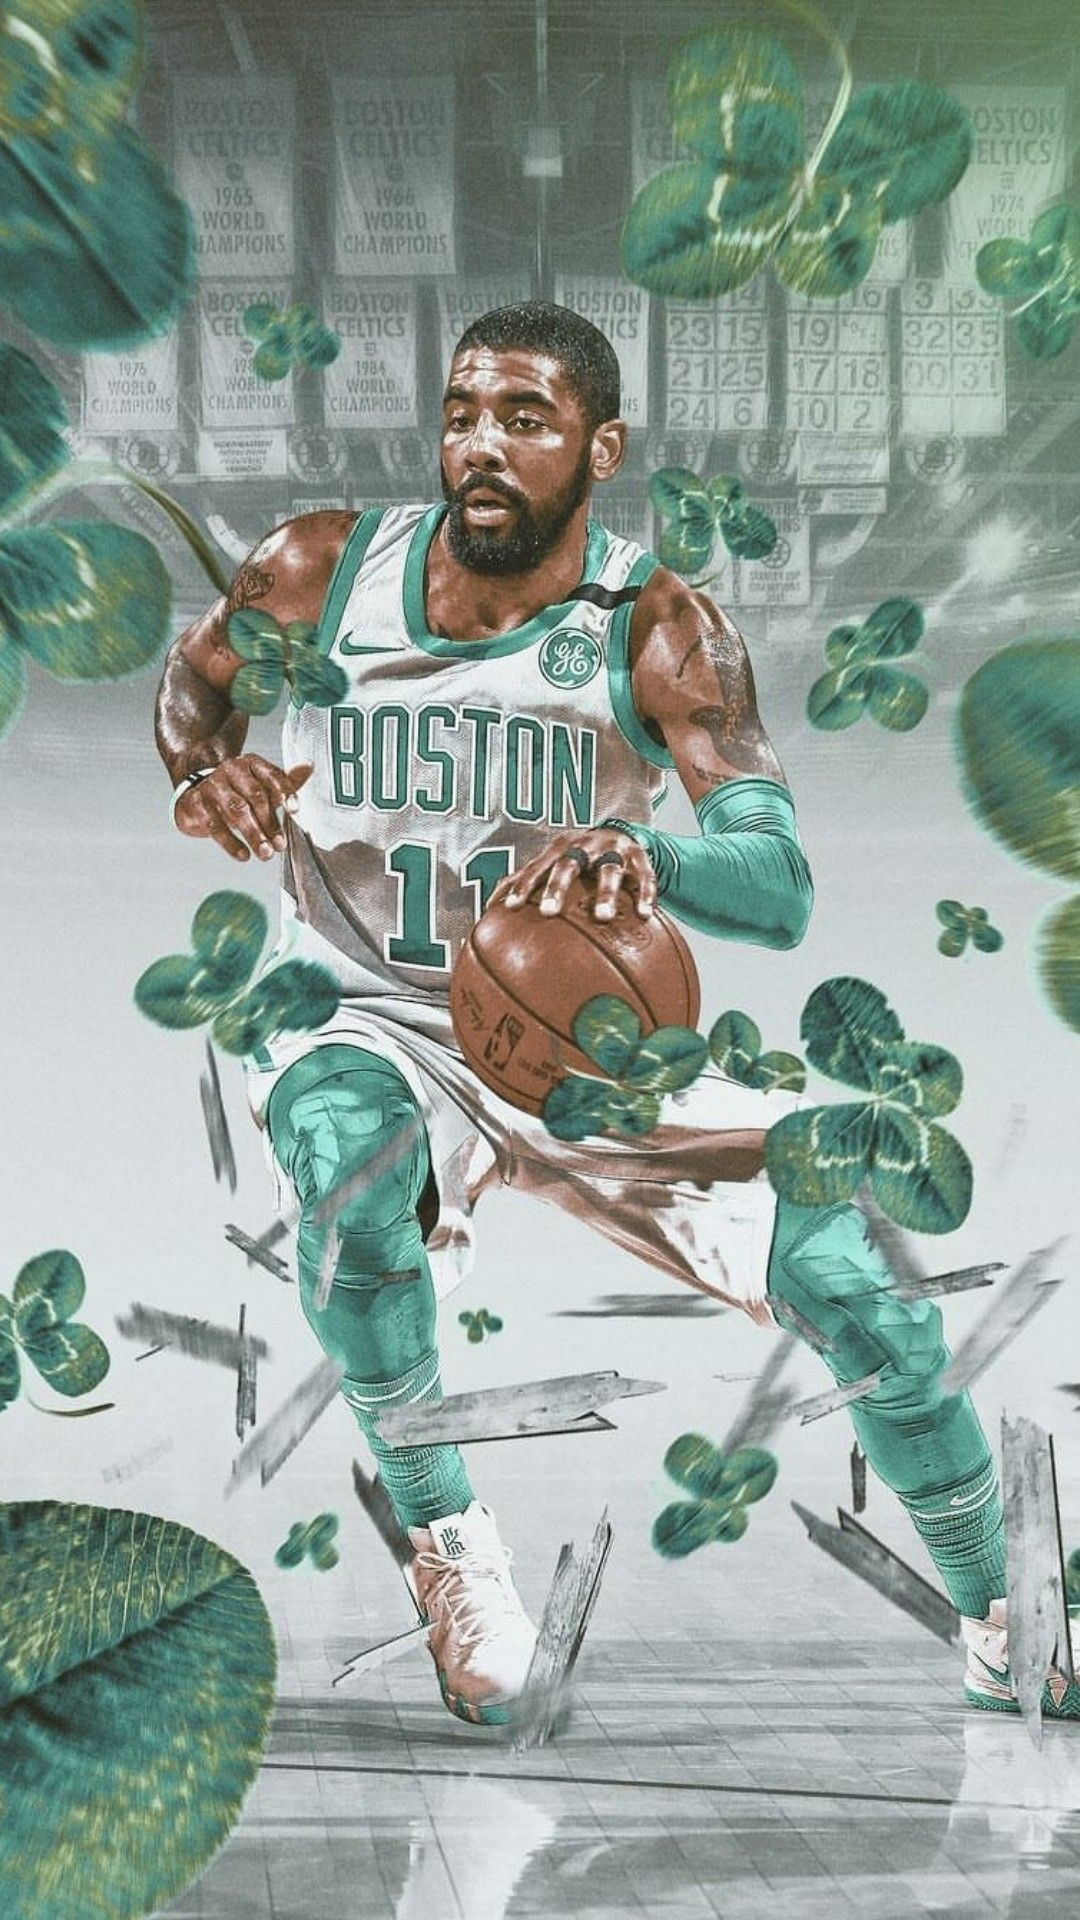 Kyrie Irving Wallpaper Marketing Esportivo Basquete E Vida Wallpapers Bonitos